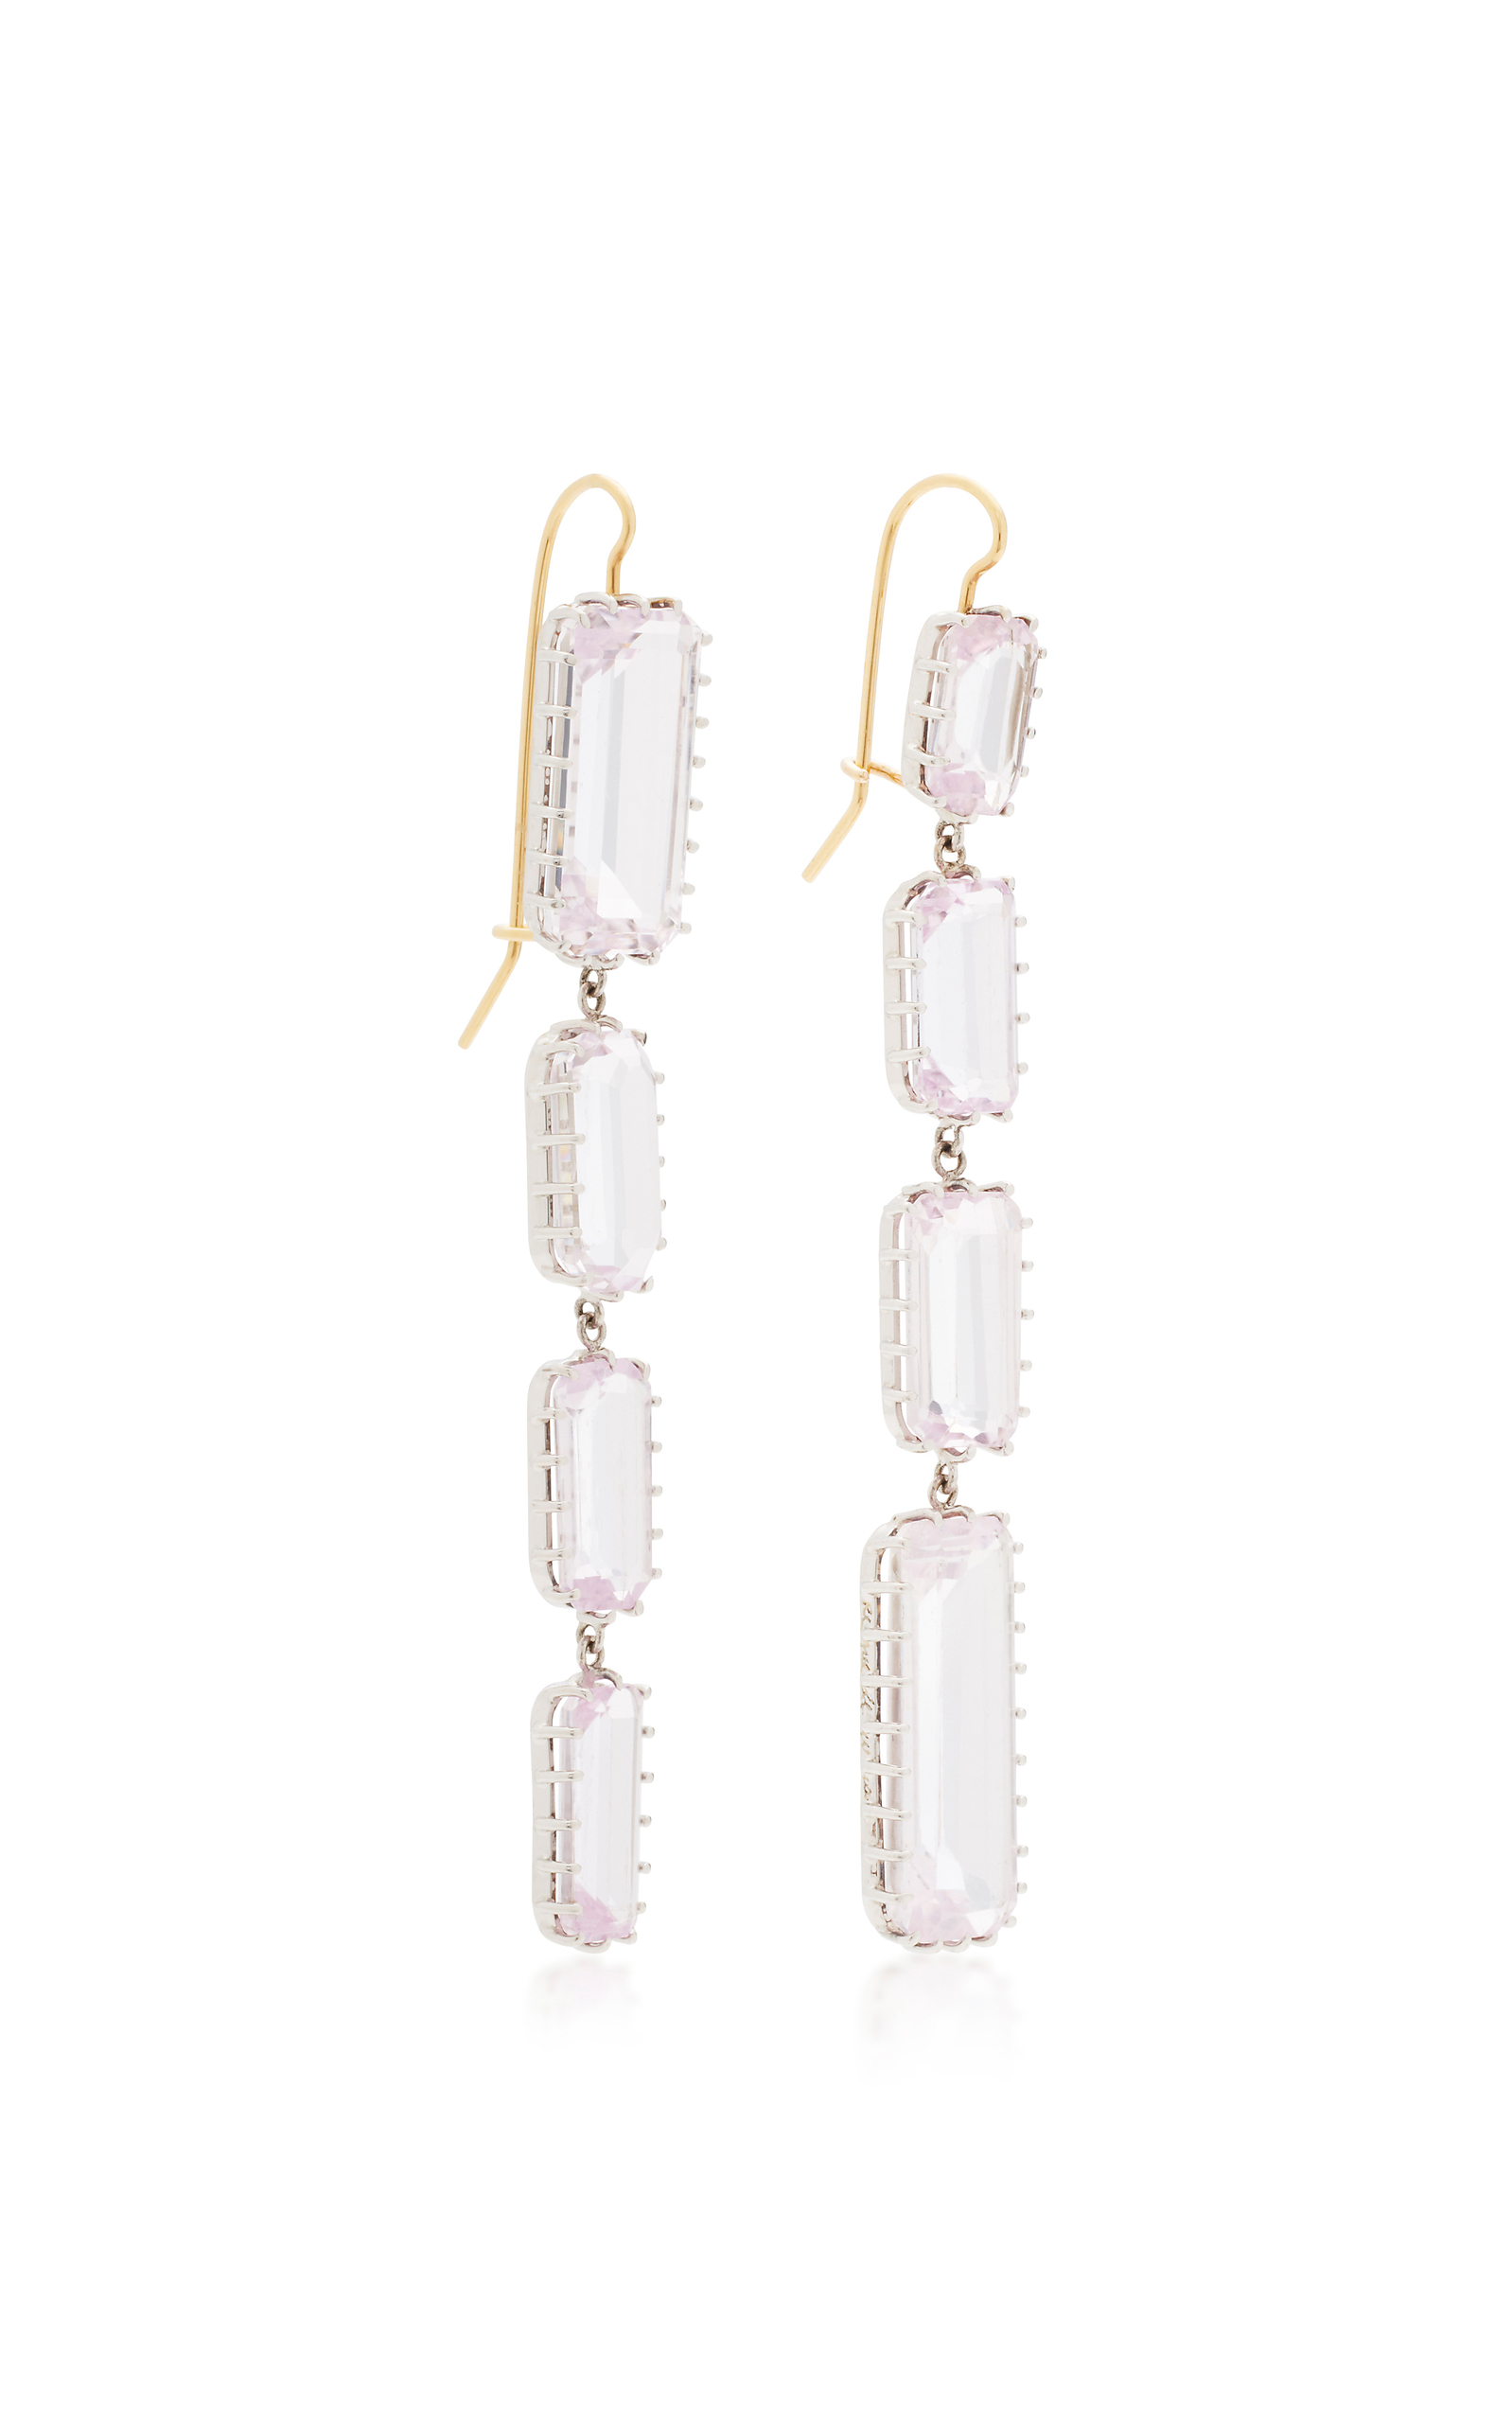 a kind kunzite gallery antique lewis gold white waterfall jewelry renee of one earrings lyst